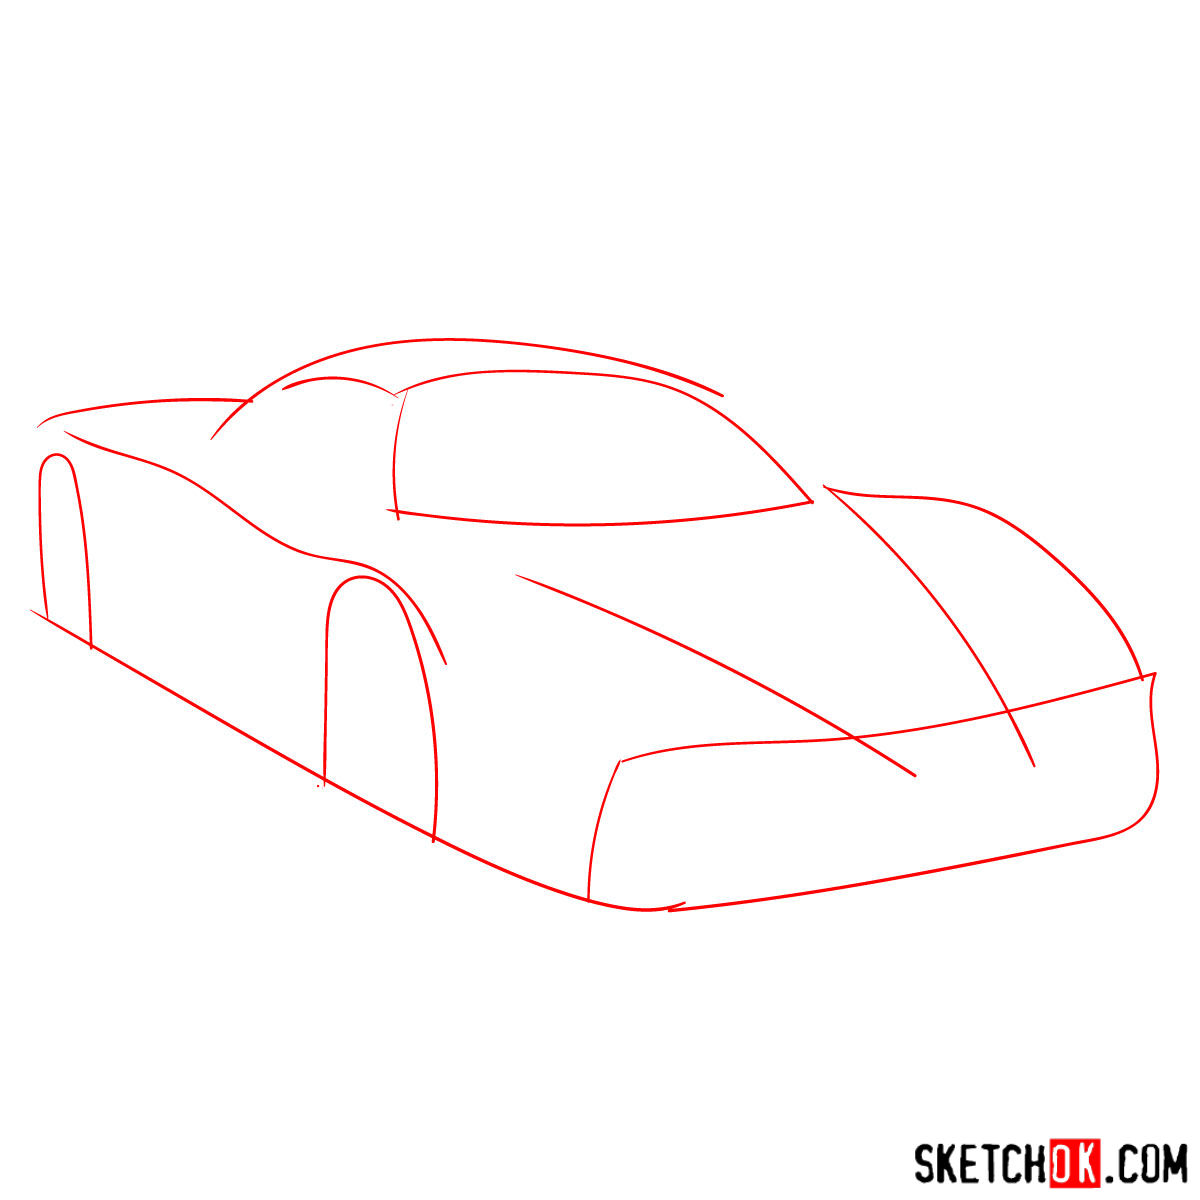 How to draw Ferrari Enzo legendary supercar - step 01